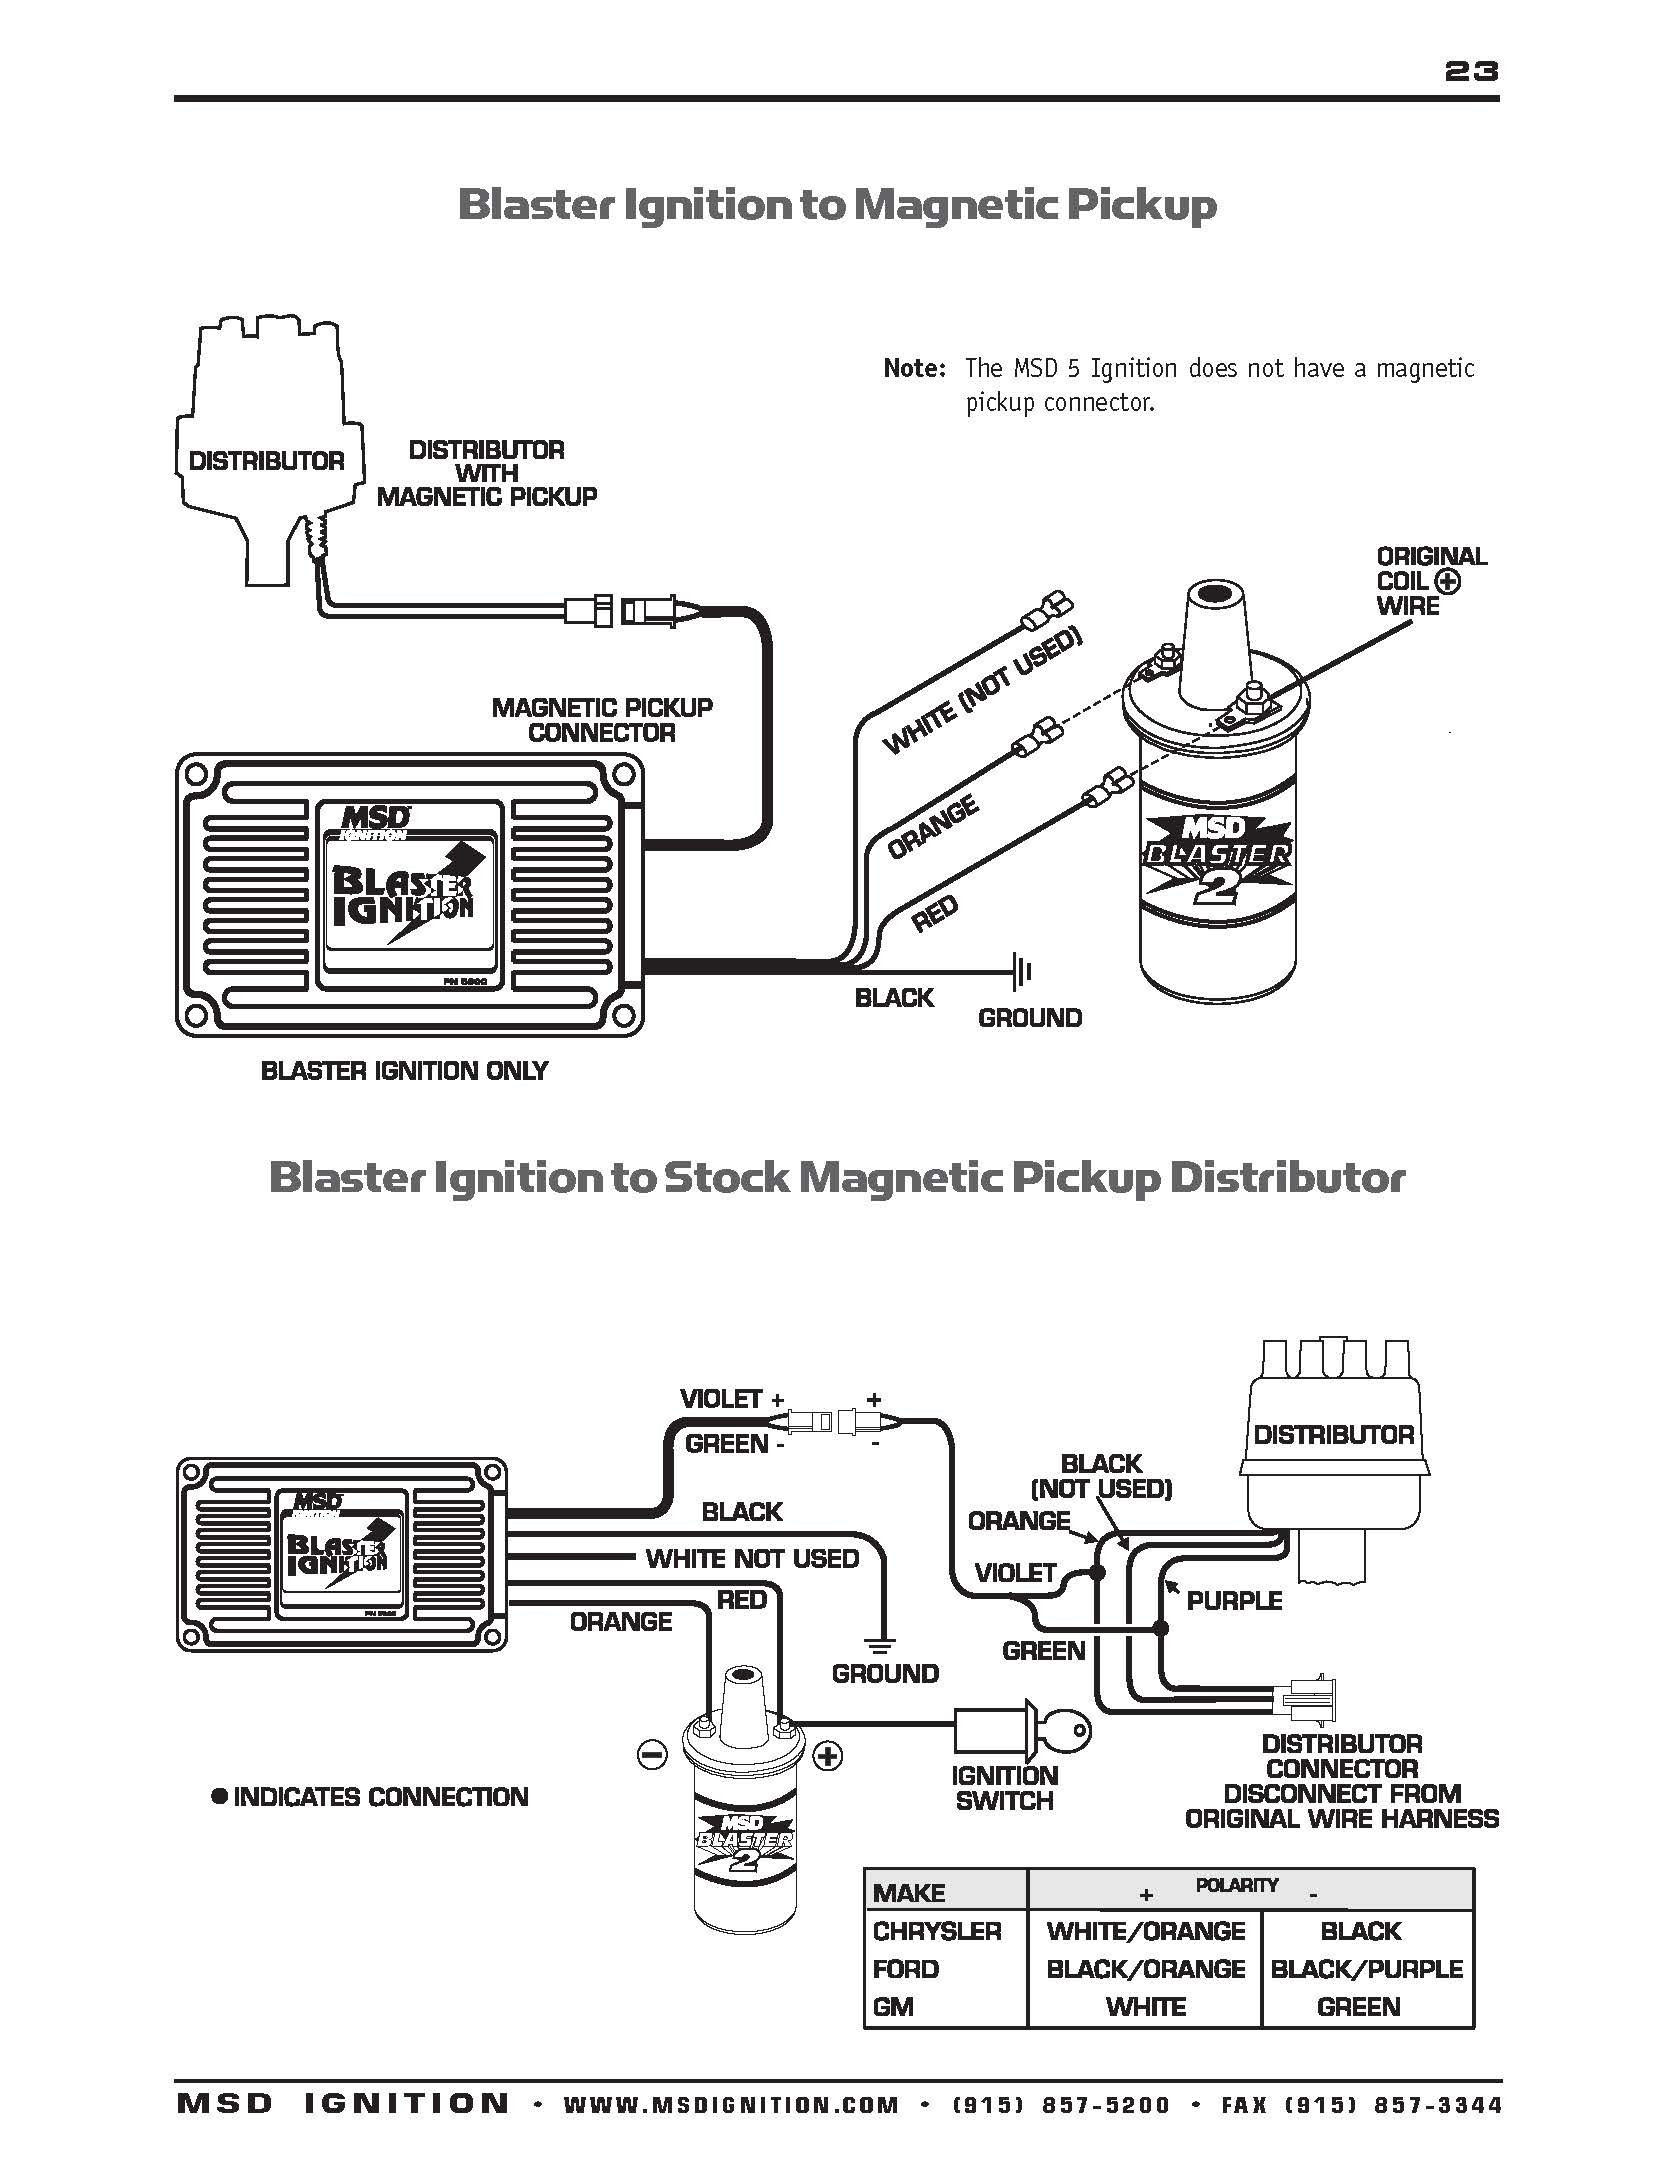 Crane Xr700 Wiring Diagram Crane Xr700 Wiring Diagram to for Mdmp 1001 02 Ignition Systems Best Of Crane Xr700 Wiring Diagram